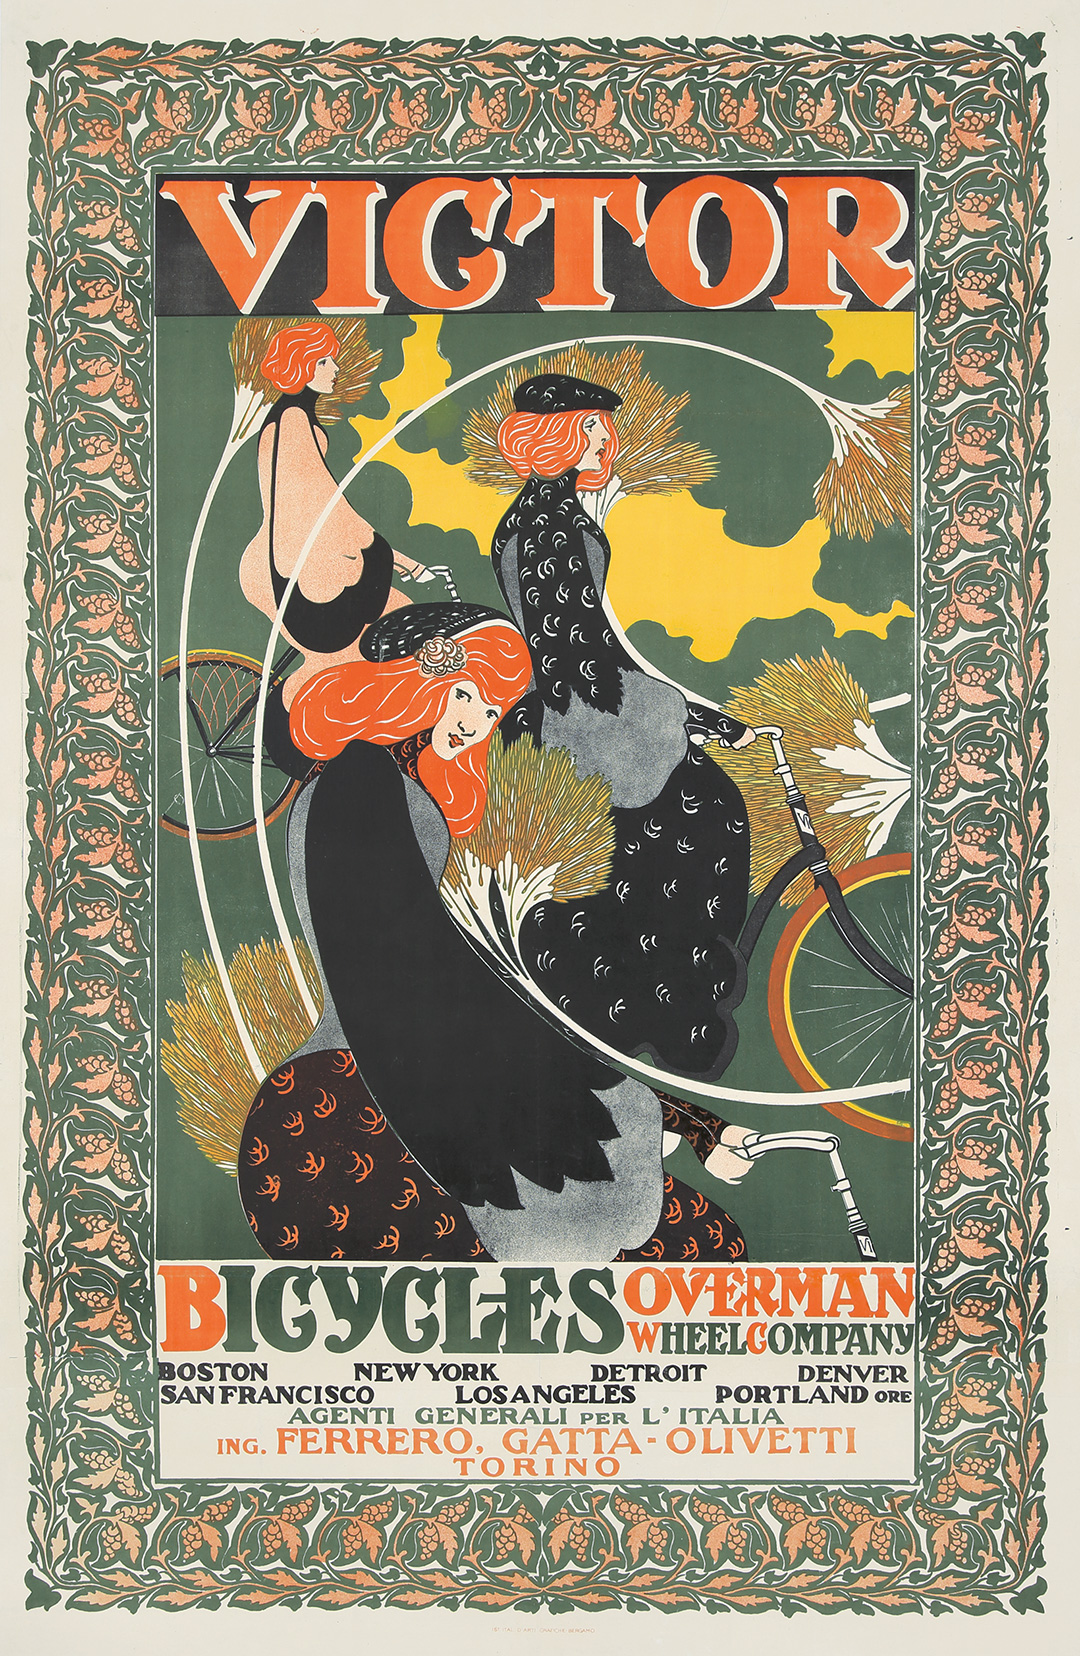 18. Victor Bicycles / Overman Wheel Co. 1896.